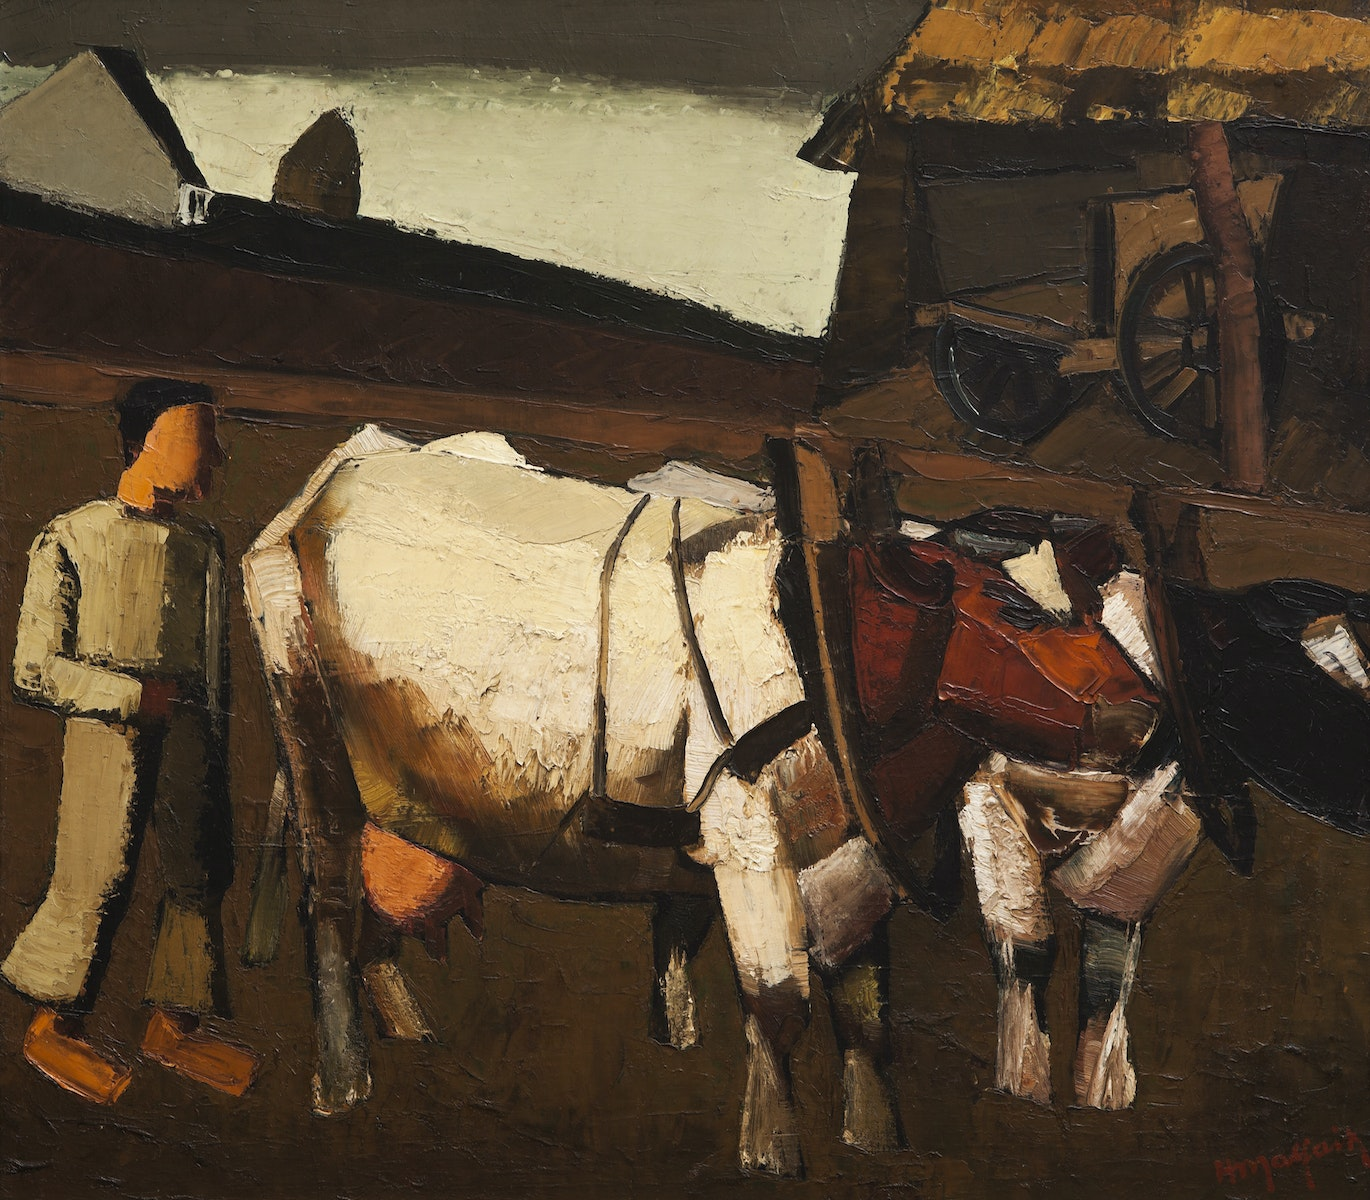 Sint-Martens-Latem, Latemse School, expressionism, Belgische Kunst, Hubert Malfait, Back to the field, cows